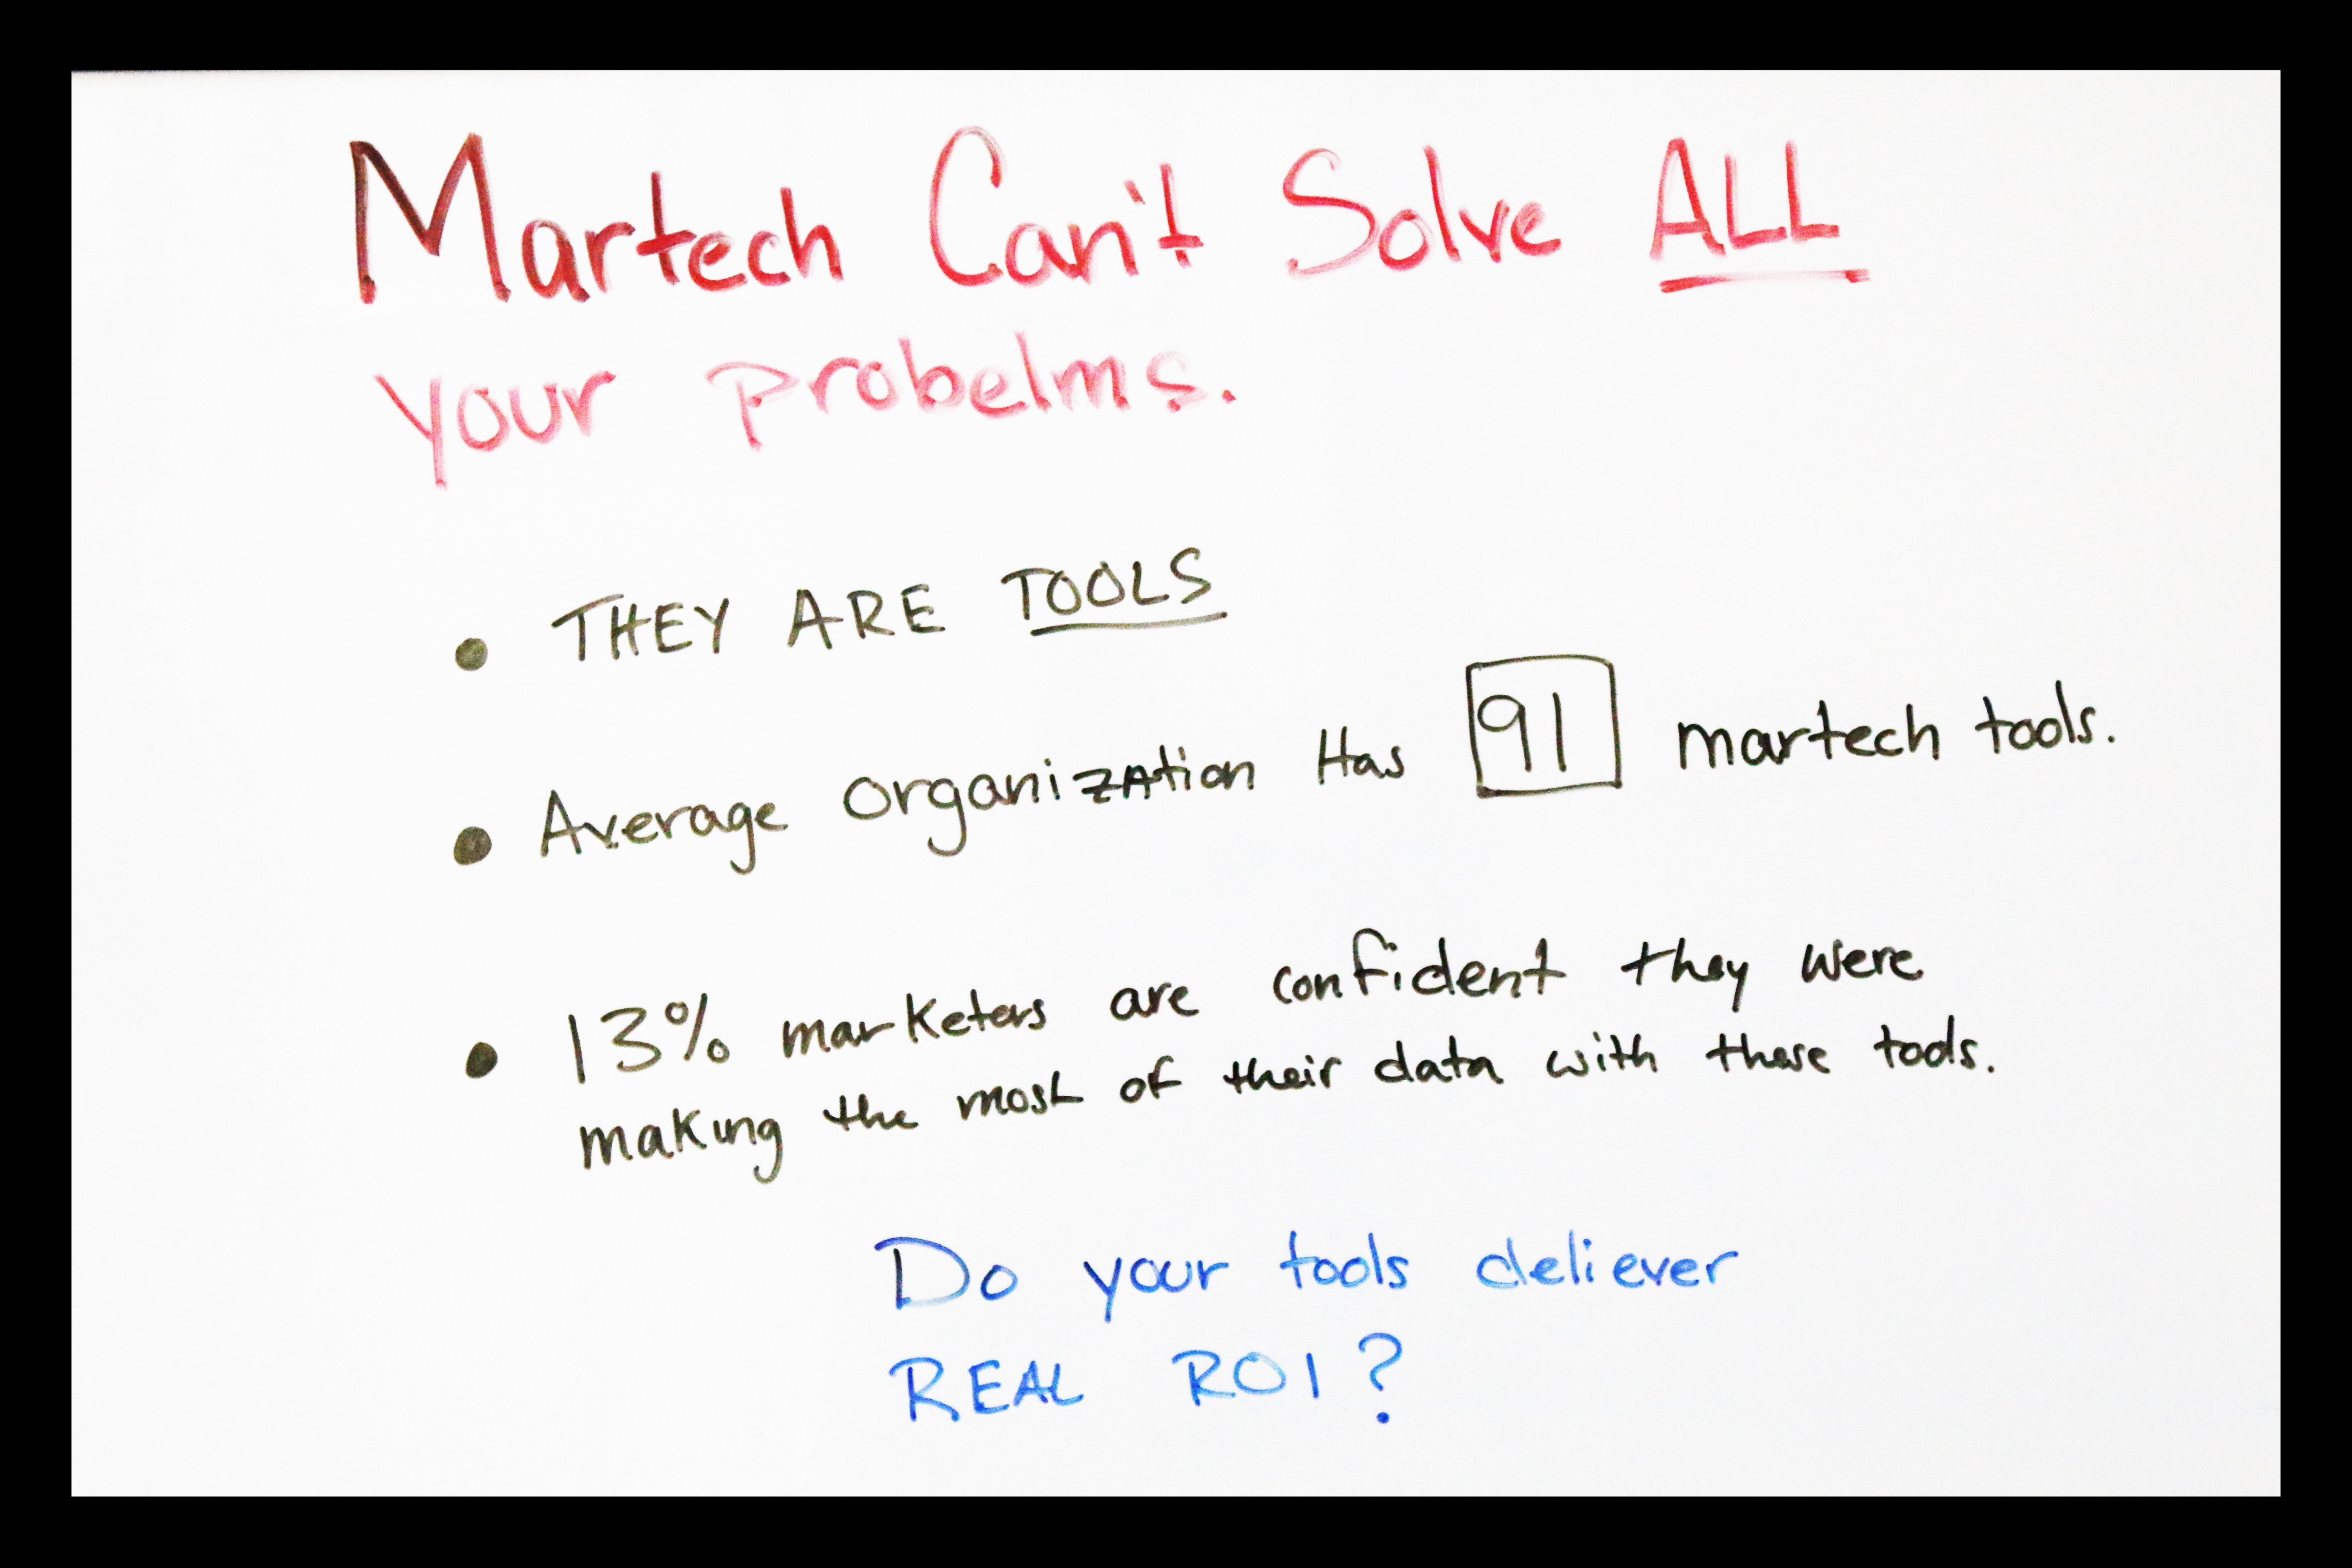 How Many Marchtech tools do you need